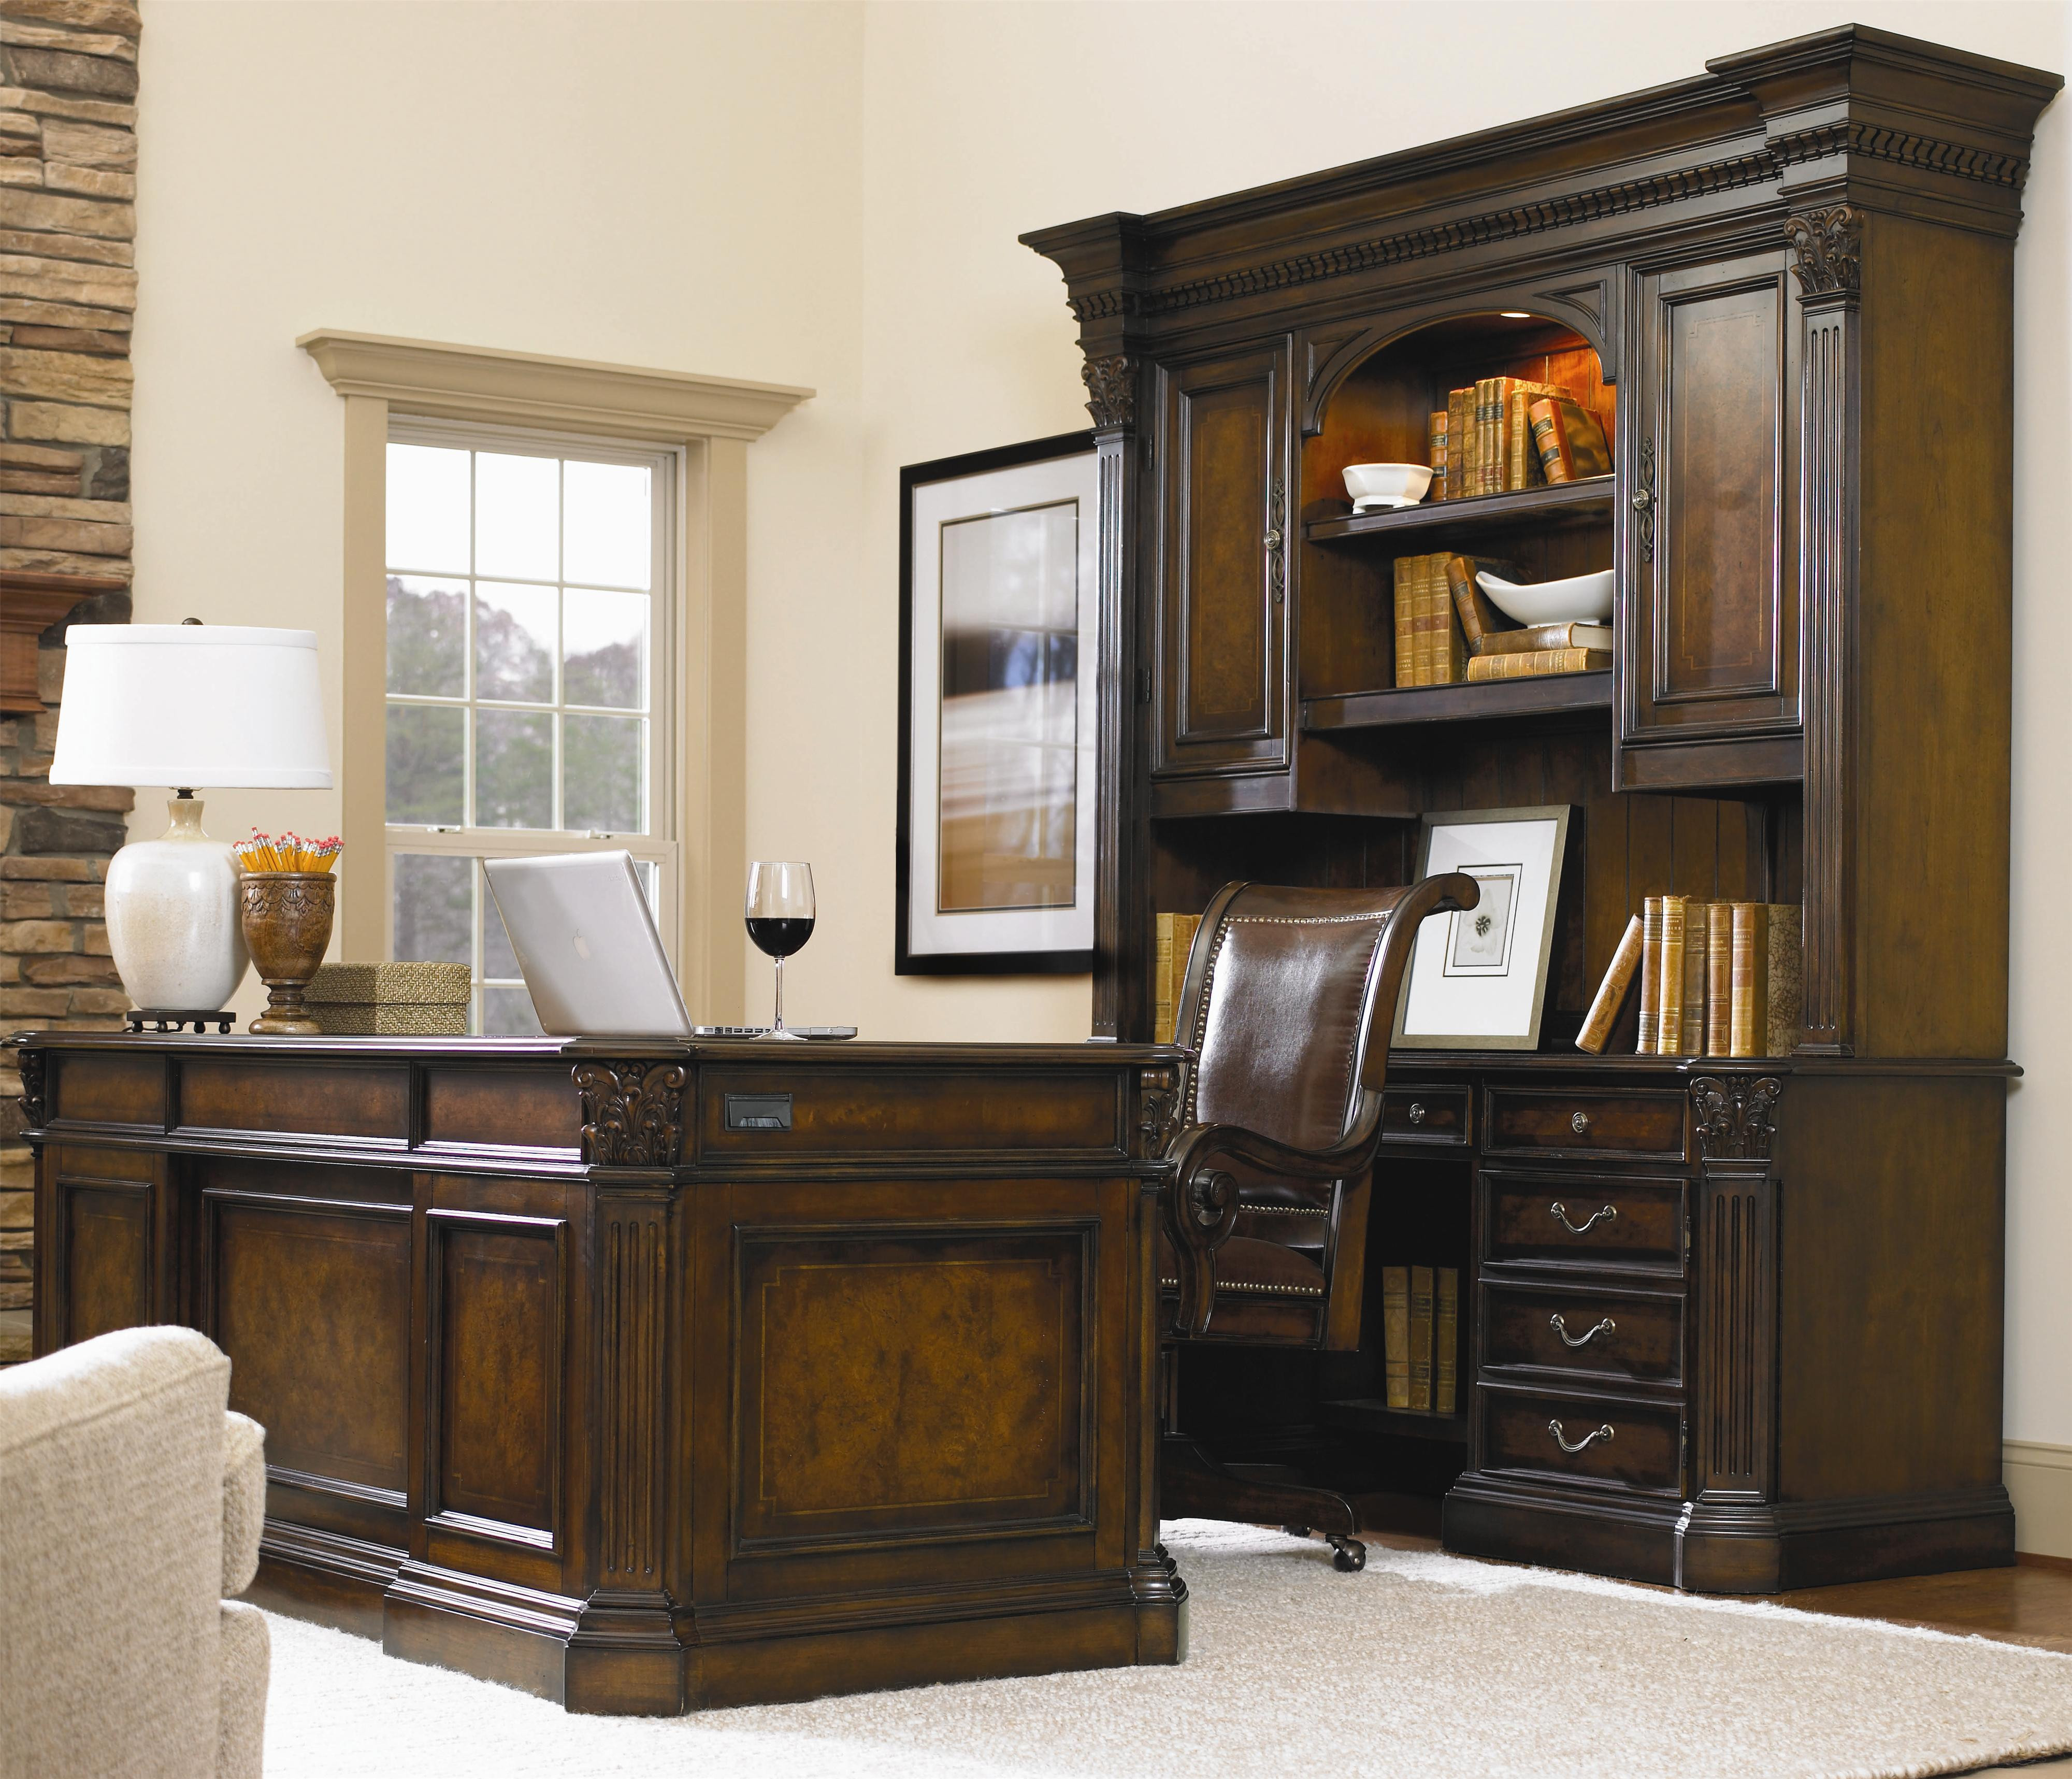 Best ideas about Hooker Office Furniture . Save or Pin European Renaissance II 374 by Hooker Furniture Baer s Now.